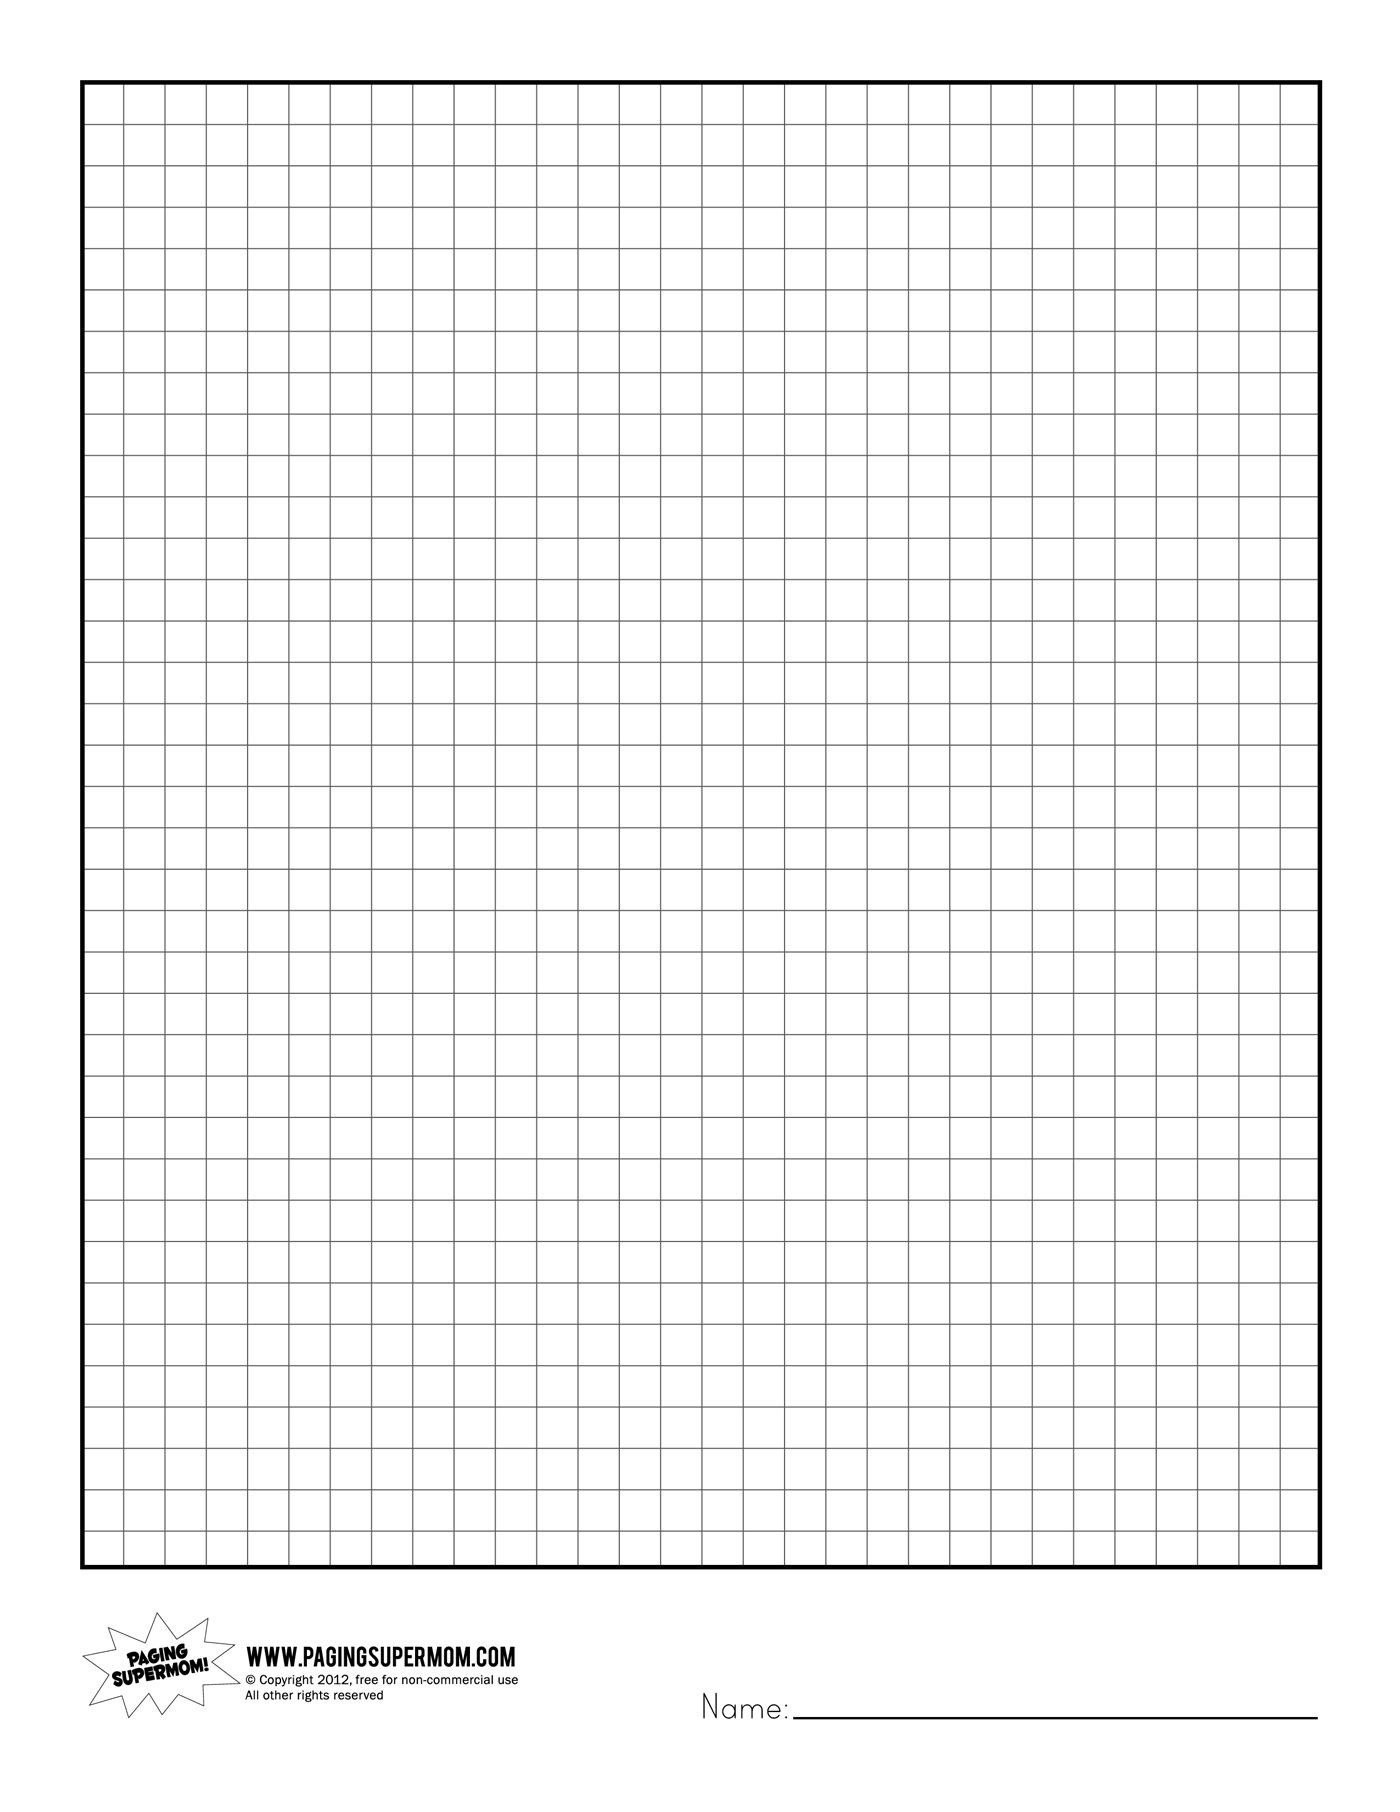 Printable Graph Paper | Healthy Eating | Printable Graph Paper, Grid - Free Printable Grid Paper